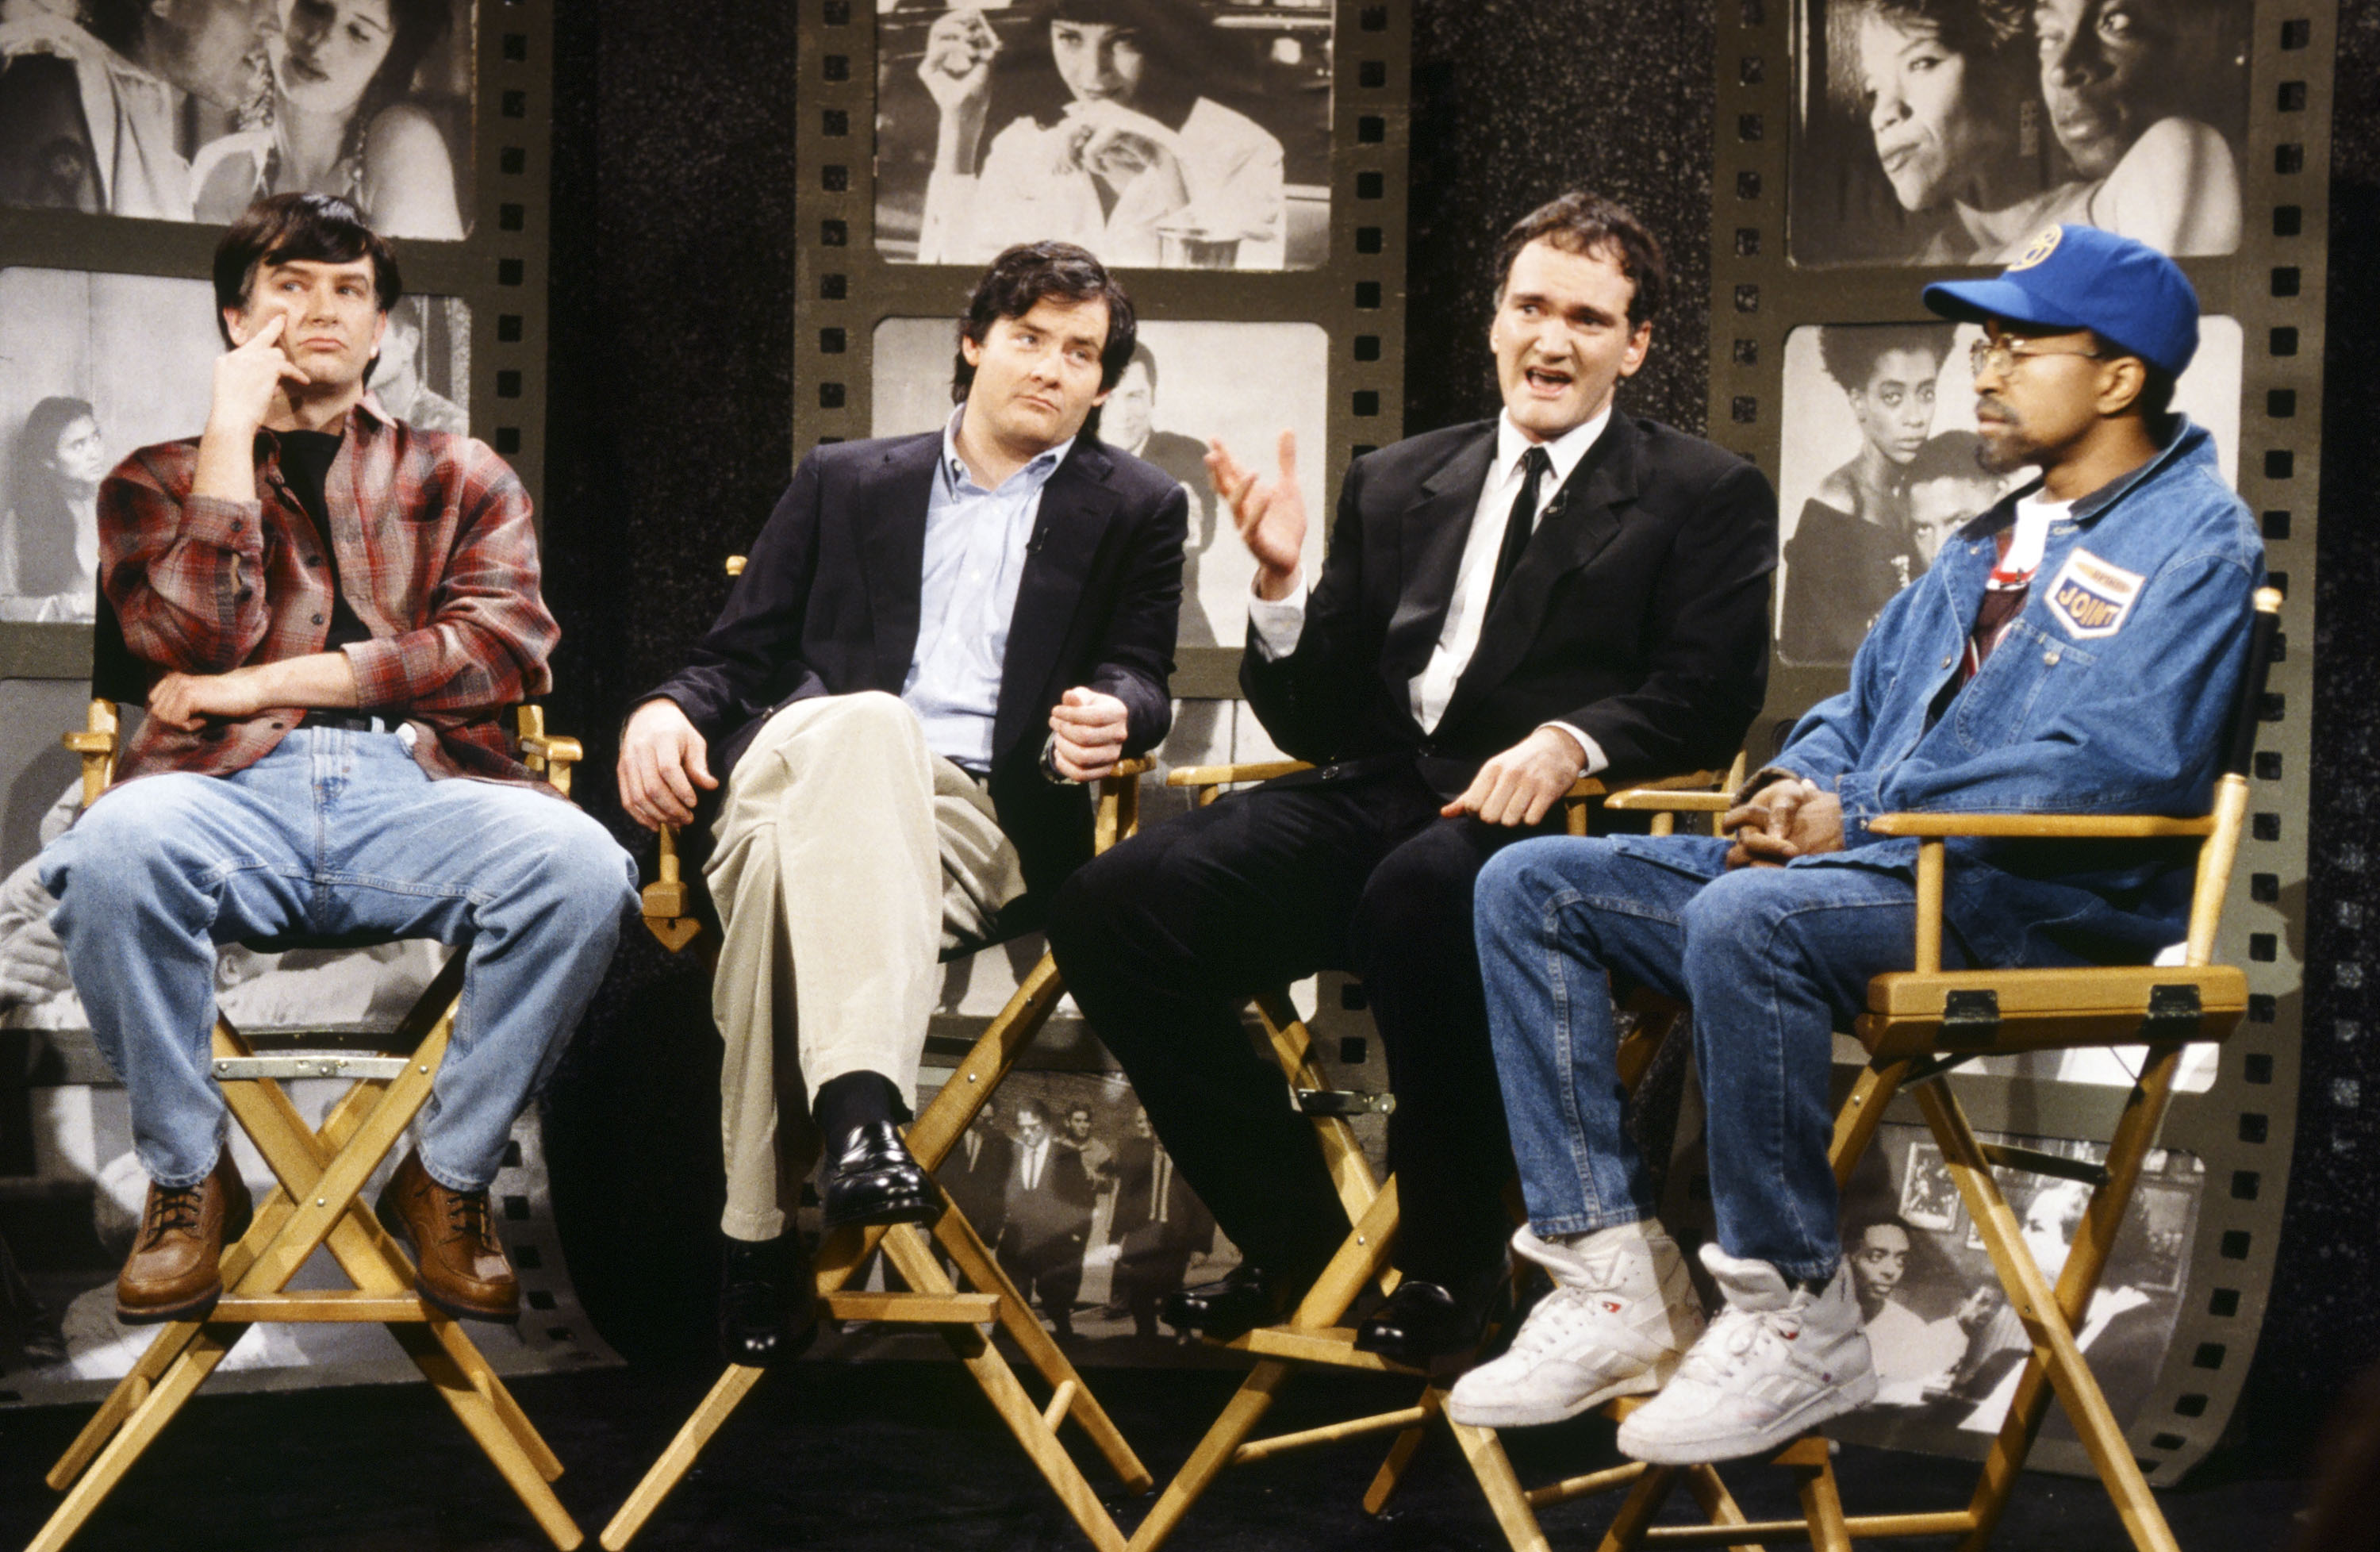 Remembering the time Quentin Tarantino hosted SNL, which was weird